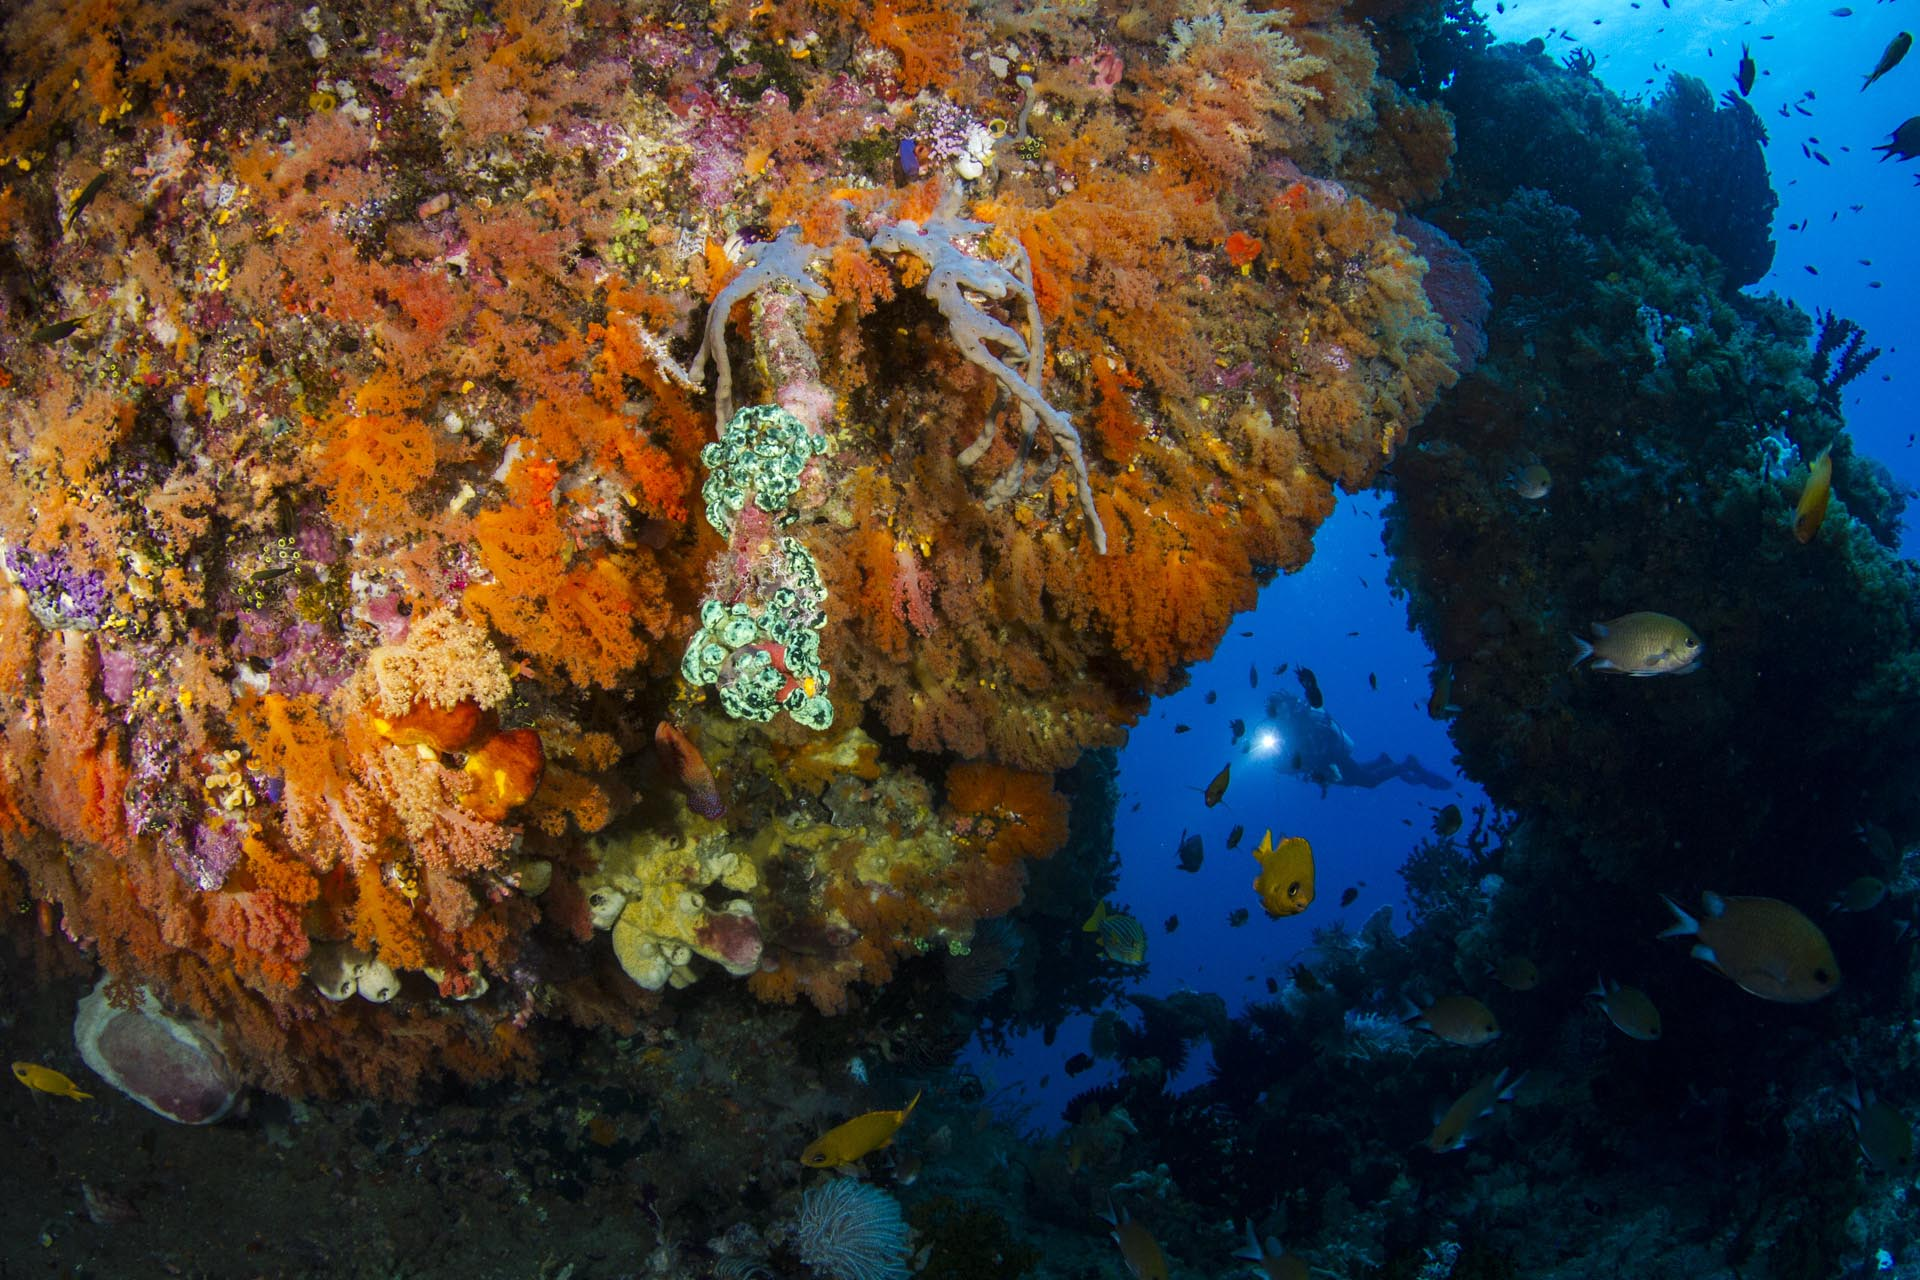 diver surrounded by orange soft coral